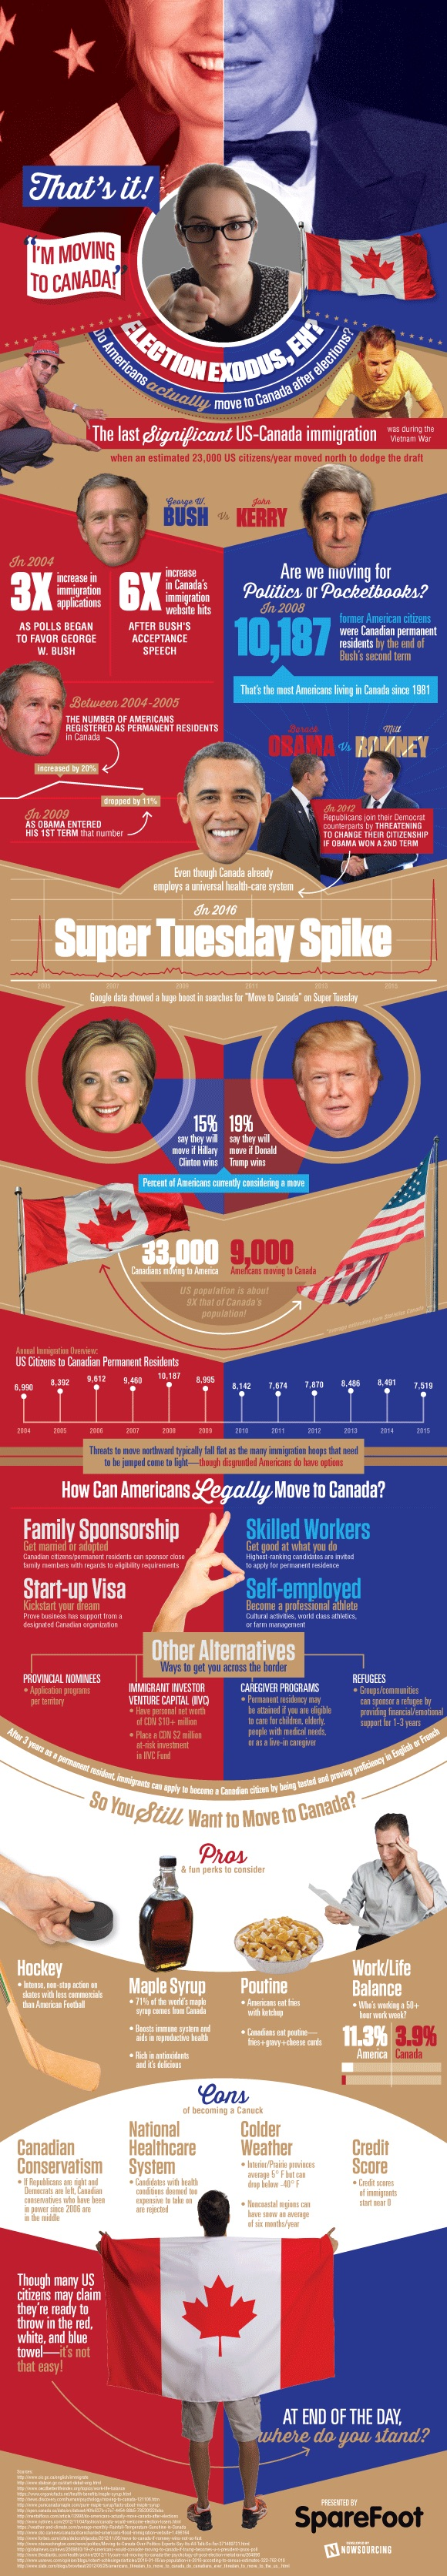 Election Exodus - Moving to Canada? infographic